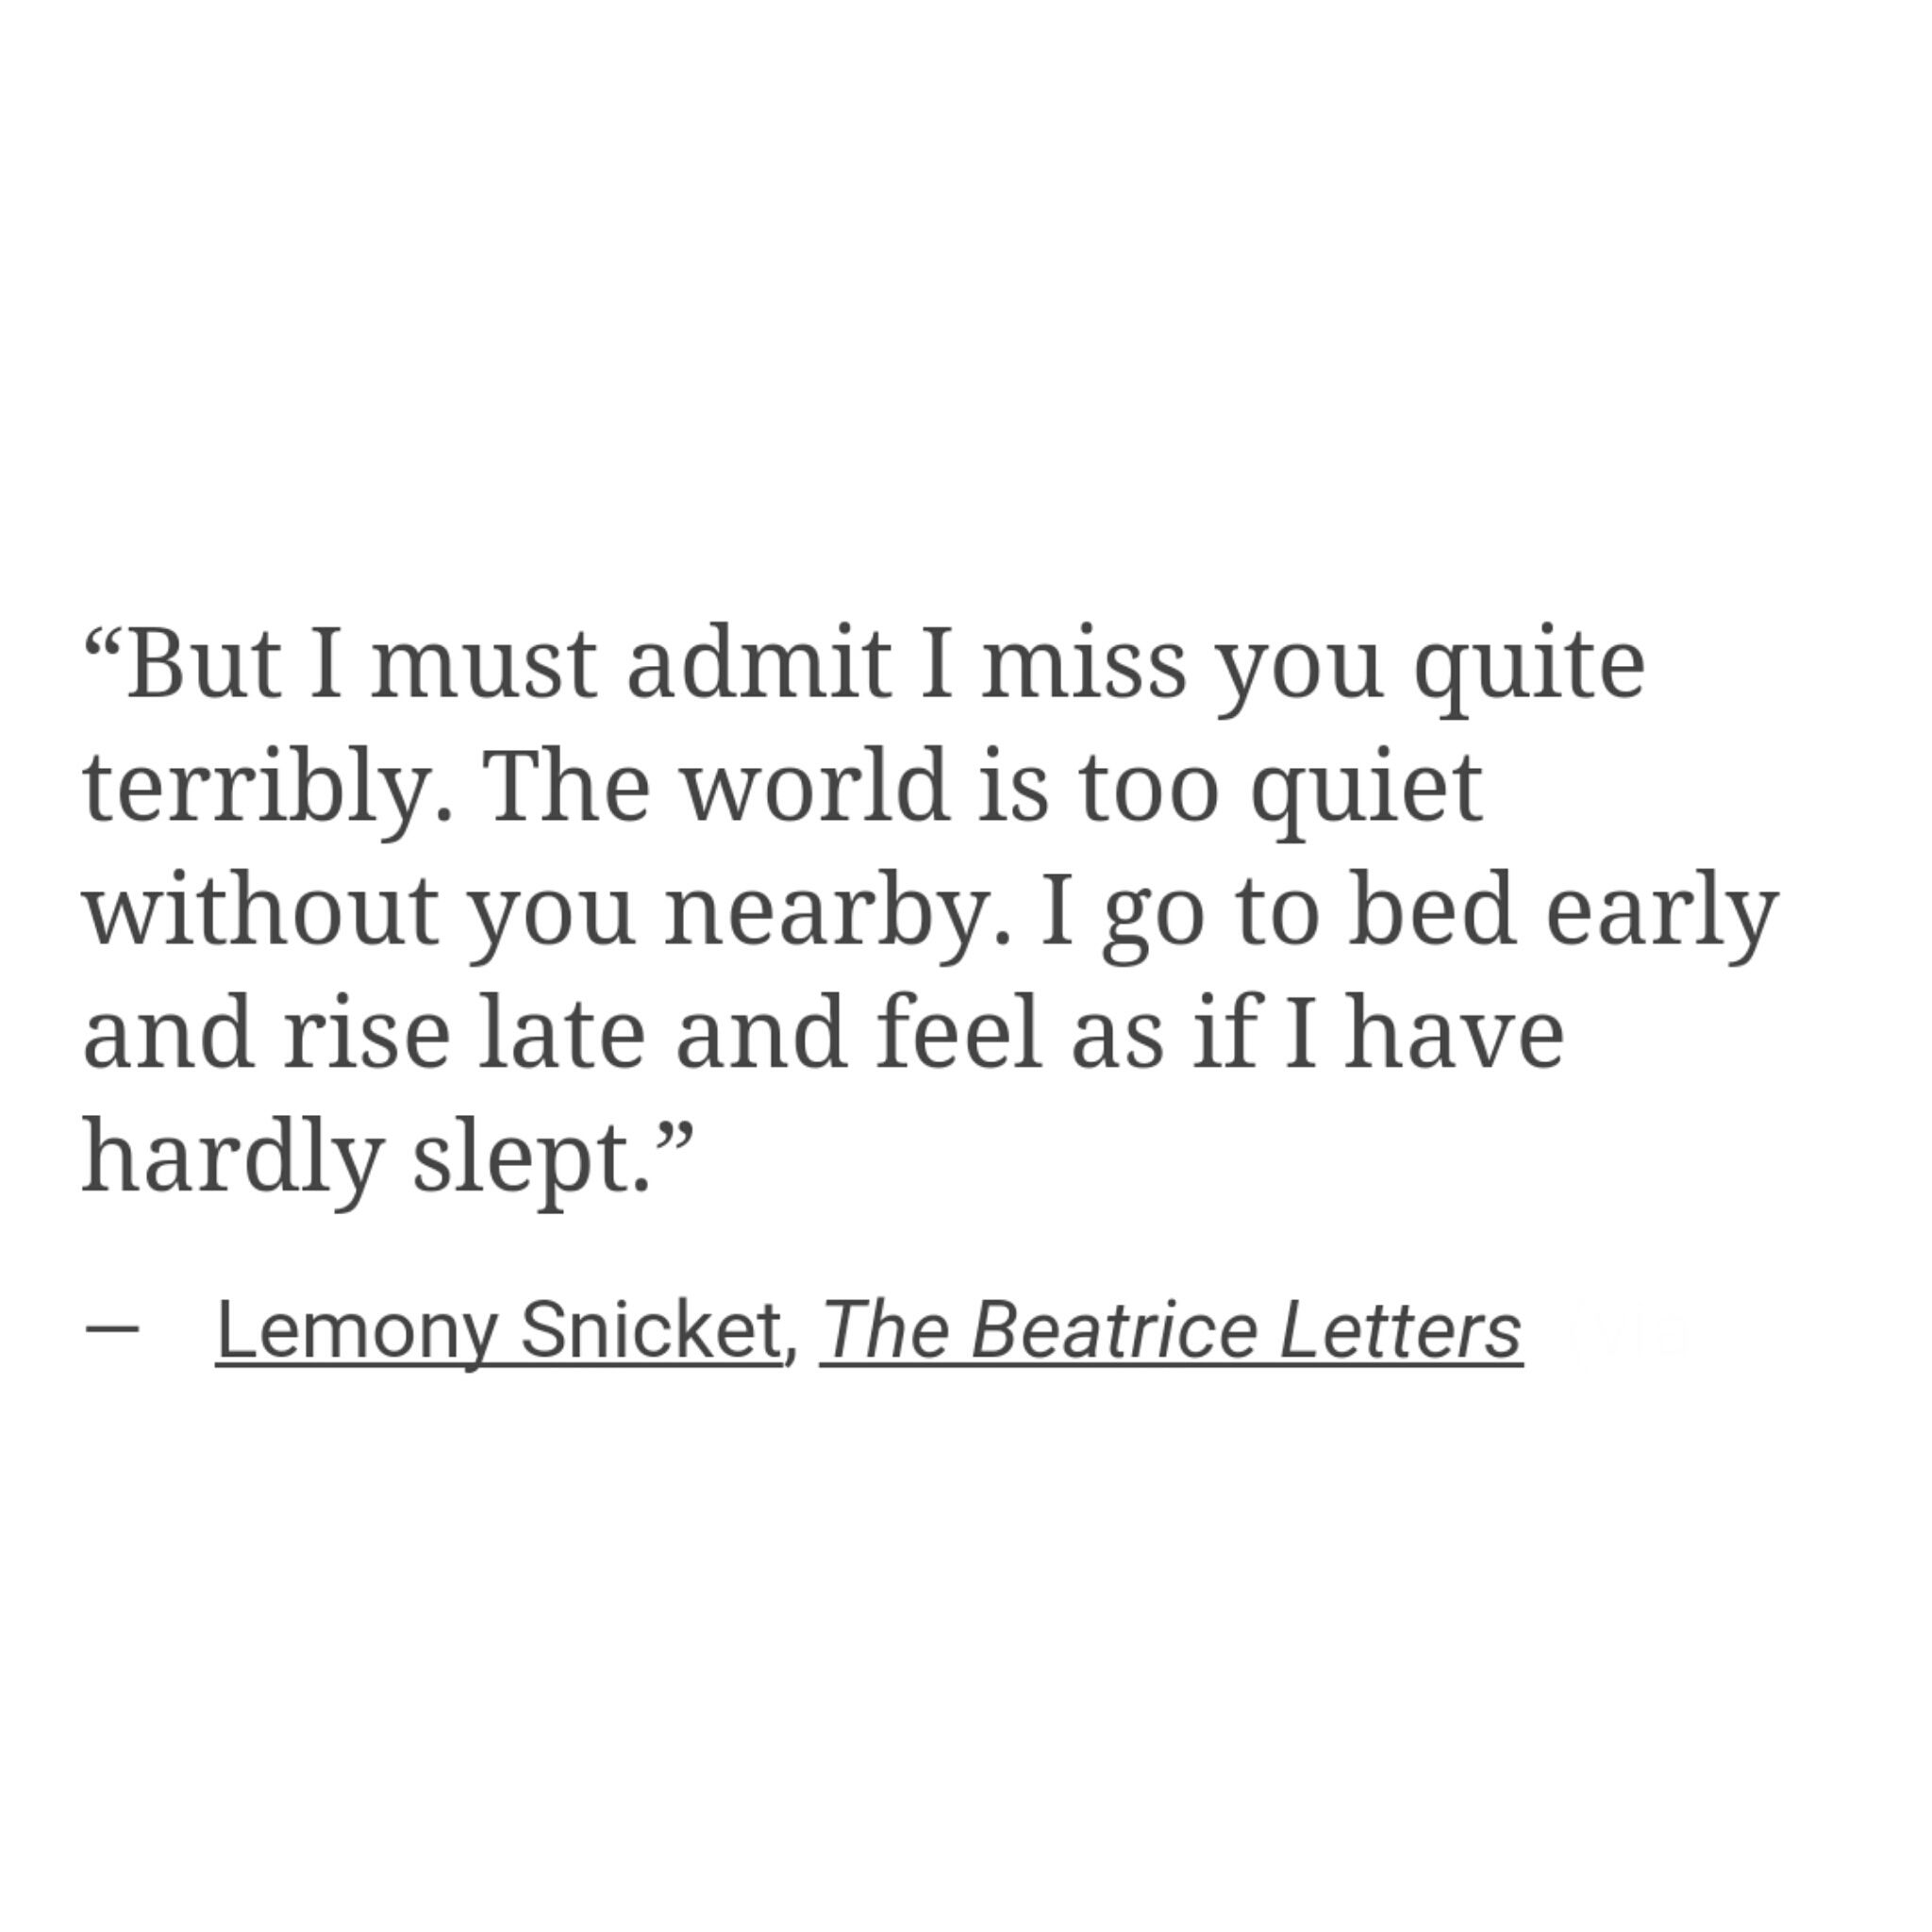 But I must admit I miss you quite terribly The world is too quiet without